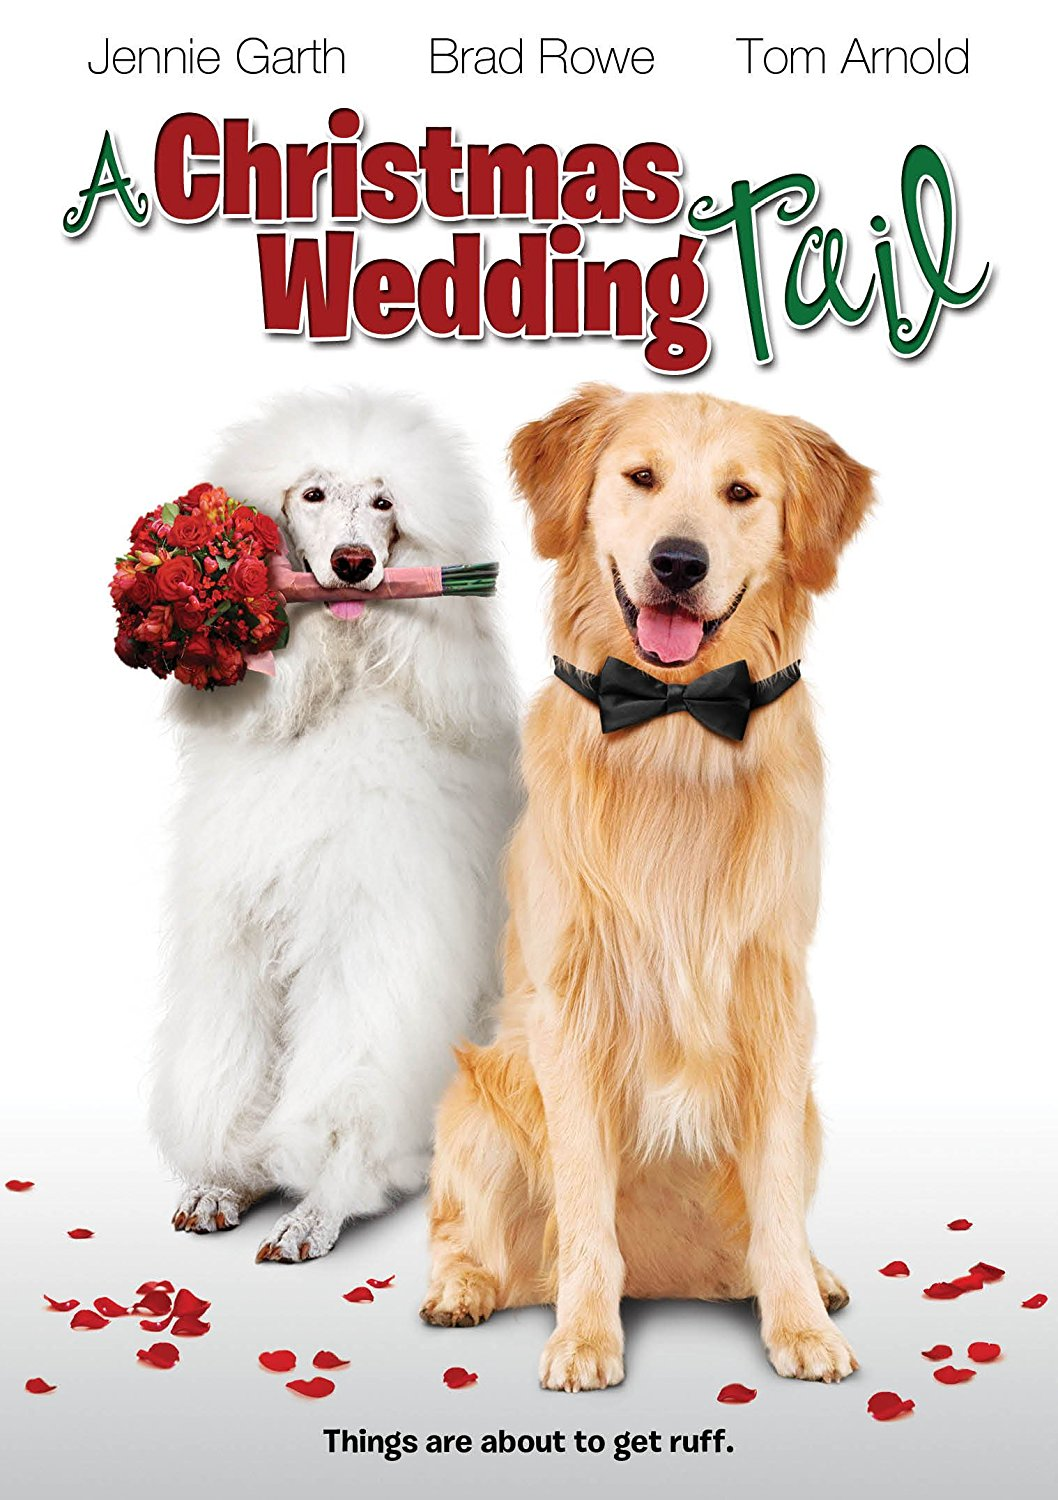 A Christmas Wedding Tail (2011) ταινιες online seires oipeirates greek subs